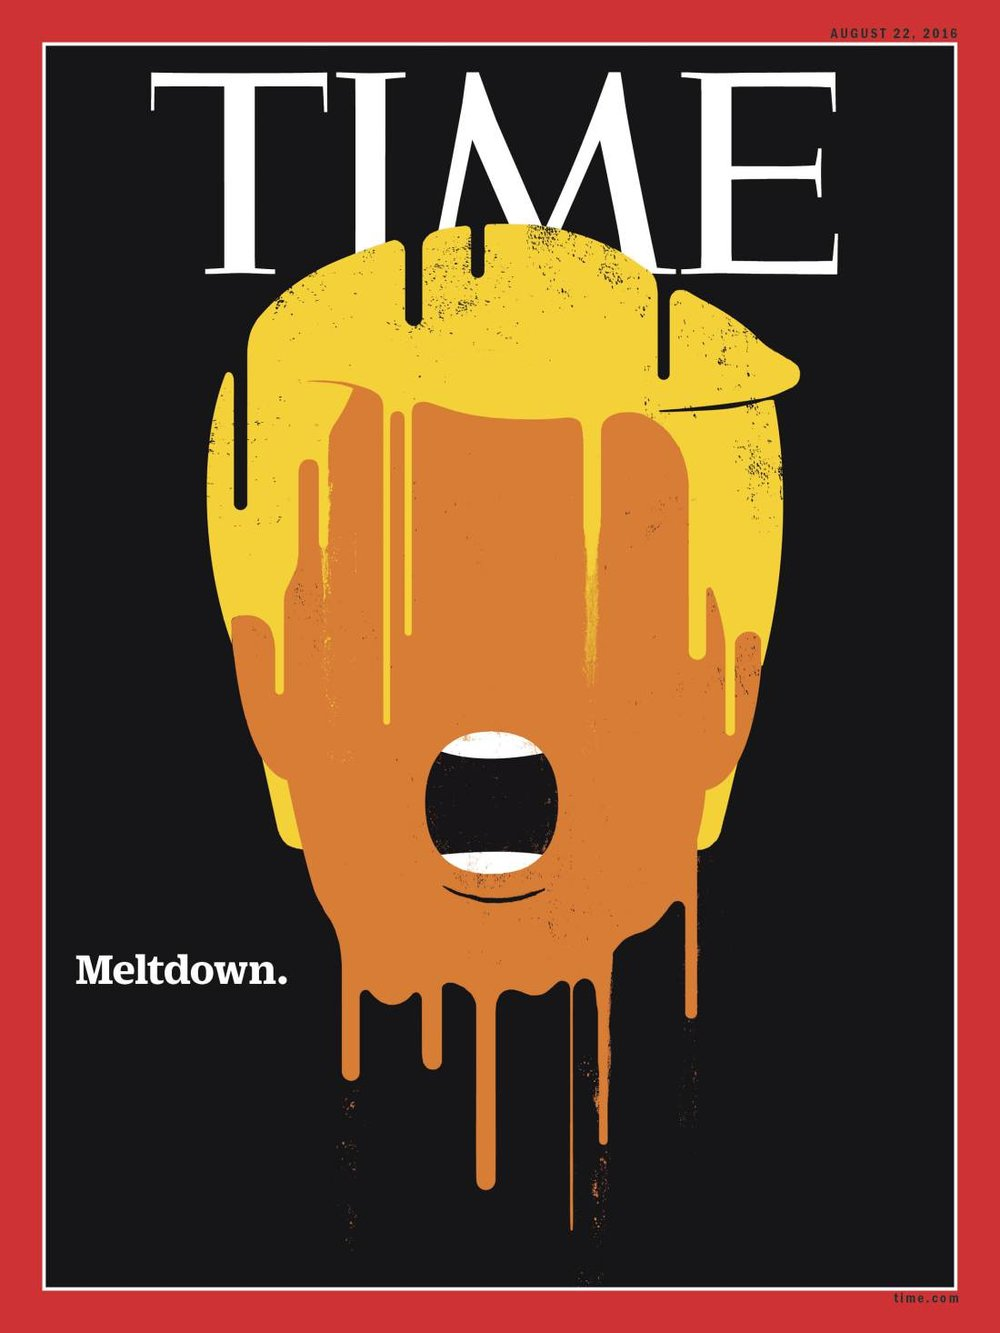 """""""D.W. Pine created the year's most impactful magazine covers, commenting on school shootings, violence against journalists, and White House chaos.""""     – Artsy     """"If magazine covers are a reflection of the current climate, then Time creative director D.W. Pine—who had three covers selected among this year's critics' picks—has certainly tapped into the zeitgeist.""""     – Folio     """"D.W. Pine is one of the nation's most influential storytellers. Every seven days, he designs and produces a newsstand cover that captures and defines the world's most pressing moments, conflicts or concerns — a weekly rotation of global zeitgeists, each fixed within an 8-by-10-inch red frame.""""    – GSU Magazine     """"Think of Time's cover—which D.W. Pine, the magazine's creative director, masterminds each week—as not only one of the most enduring and iconic pieces of media real estate, but an ongoing creative campaign.""""    – Ad Age     """"Chronicling the nation's issues, events and history as it happens, Time magazine shies away from nothing and creates emotional impact in an instant.""""     – FIPP"""